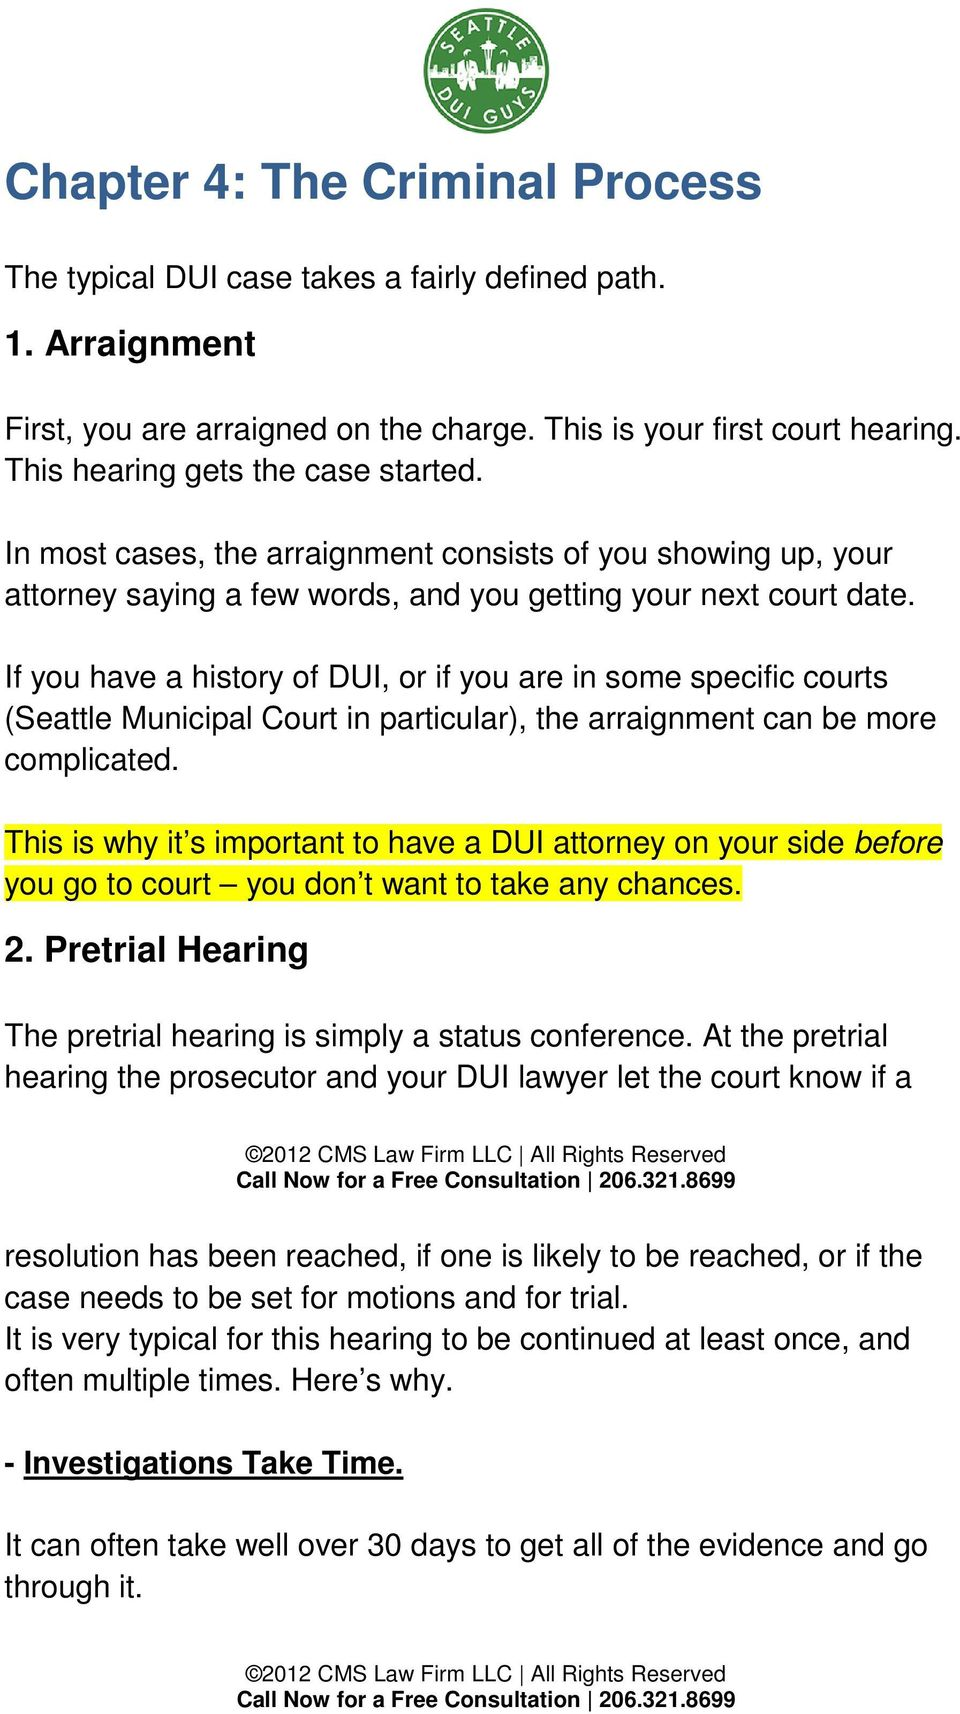 If you have a history of DUI, or if you are in some specific courts (Seattle Municipal Court in particular), the arraignment can be more complicated.